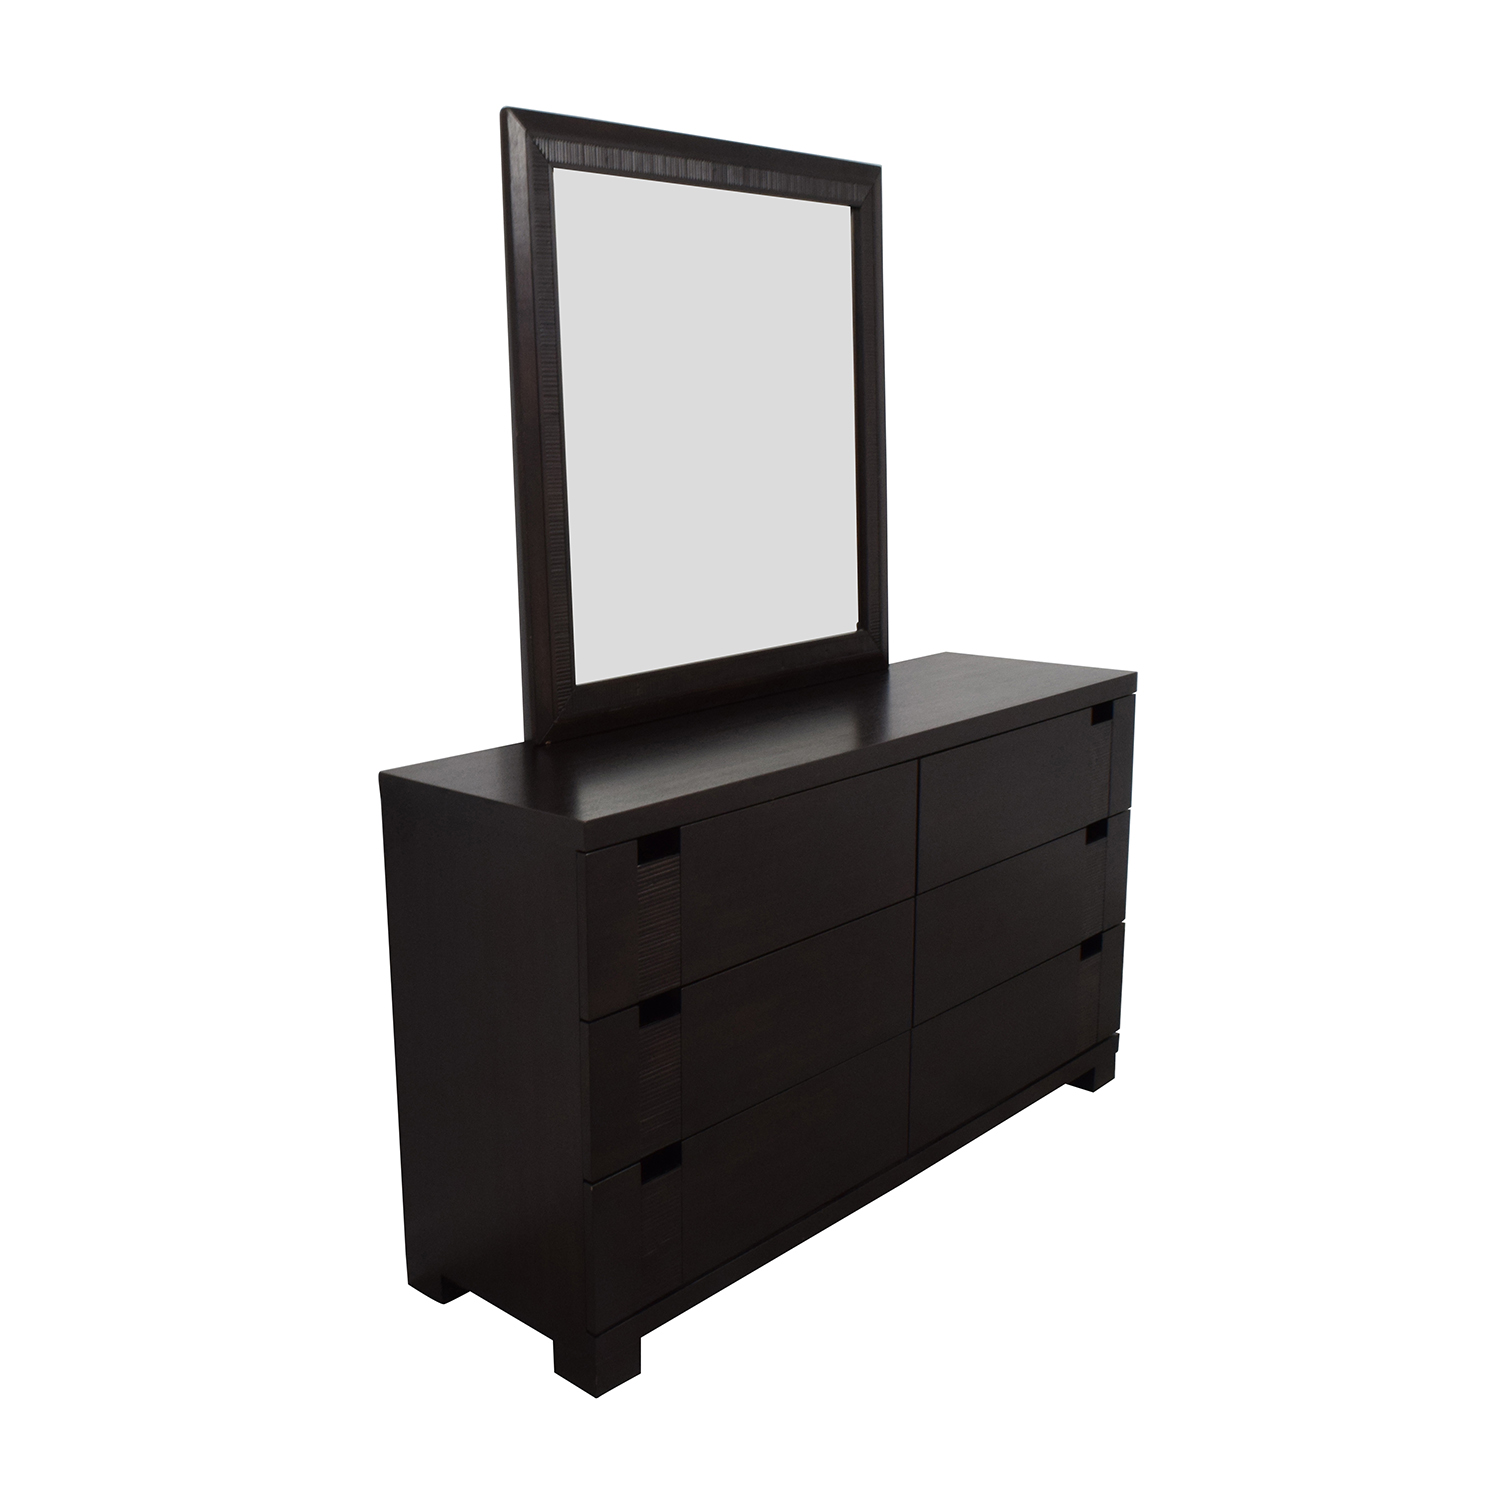 The Door Store The Door Store Dark Brown Wooden Six-Drawer Dresser with Mirror Storage